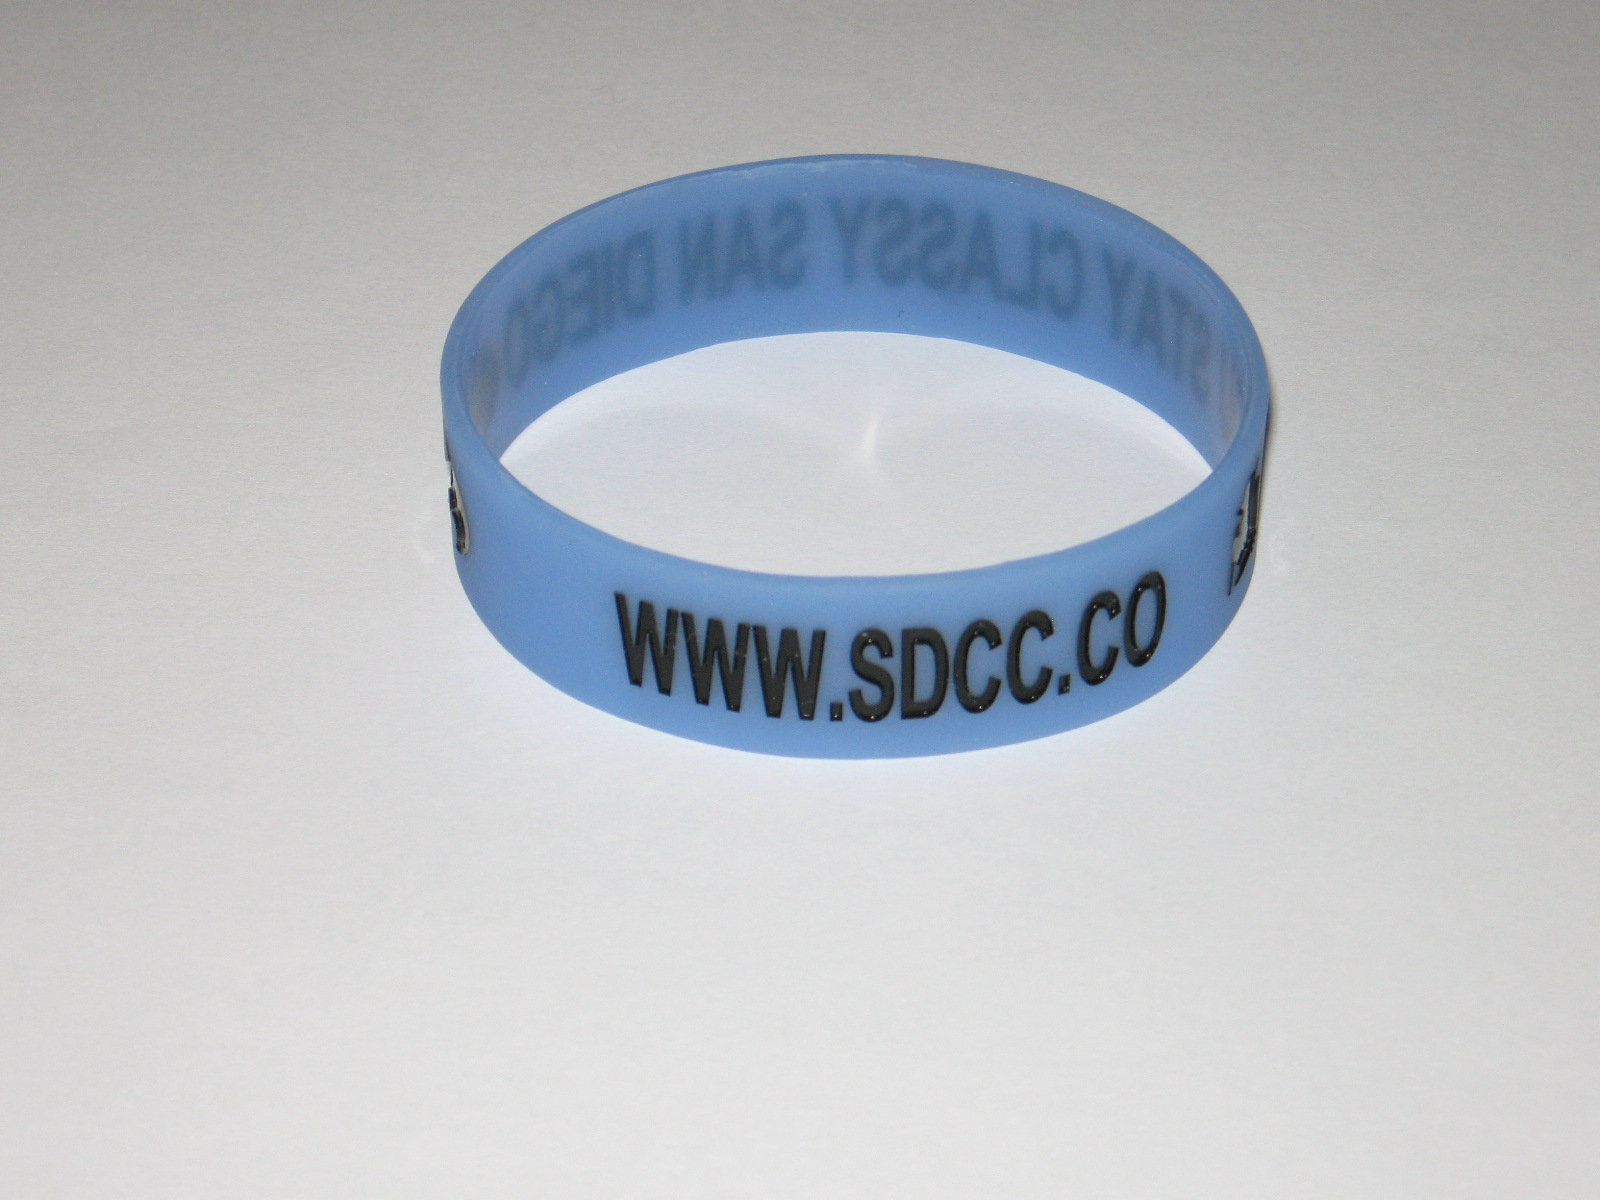 2014 SDCC Comic Con Wristband